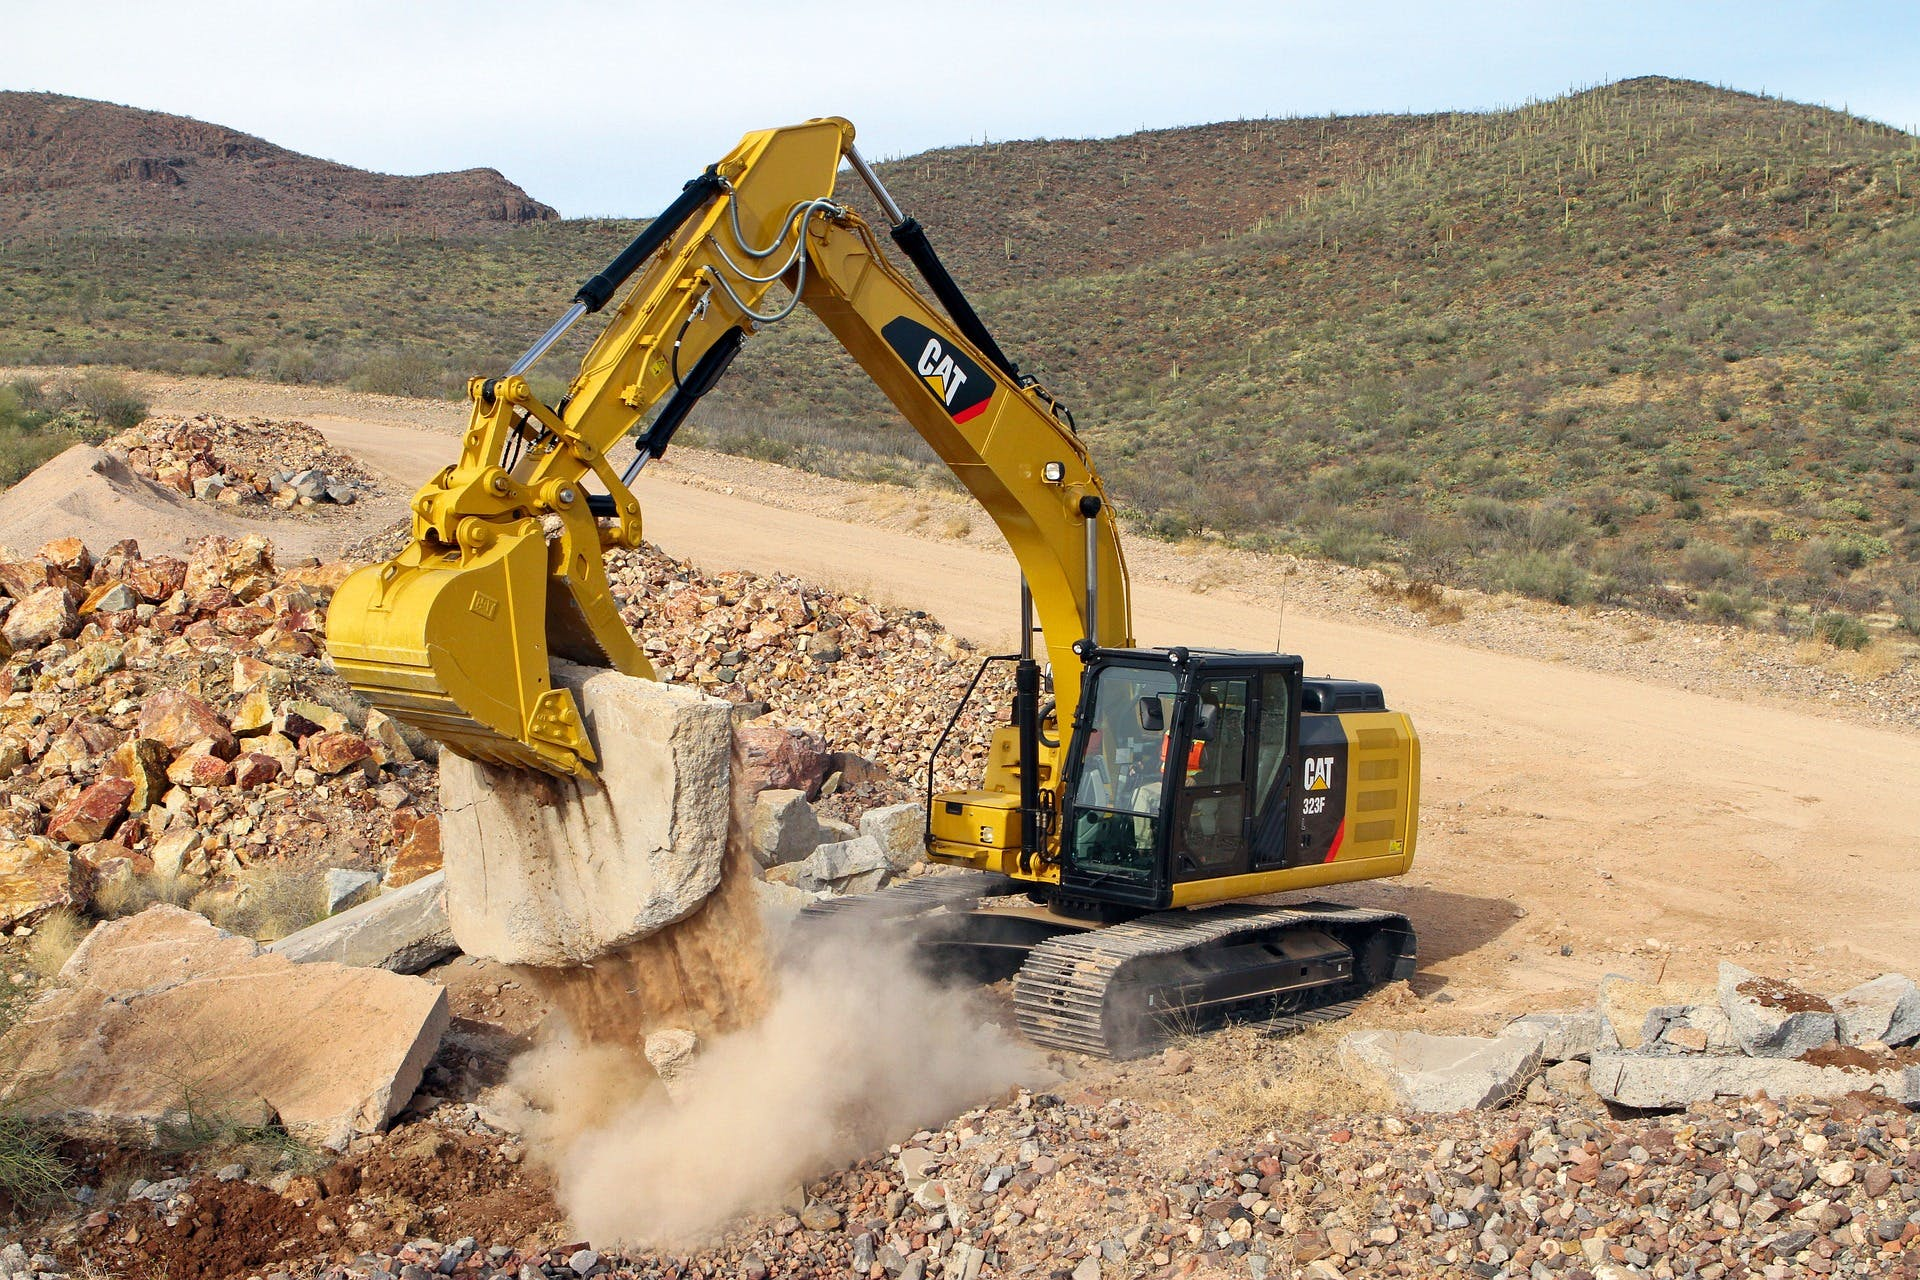 Excavator with double-action hydraulic cylinders